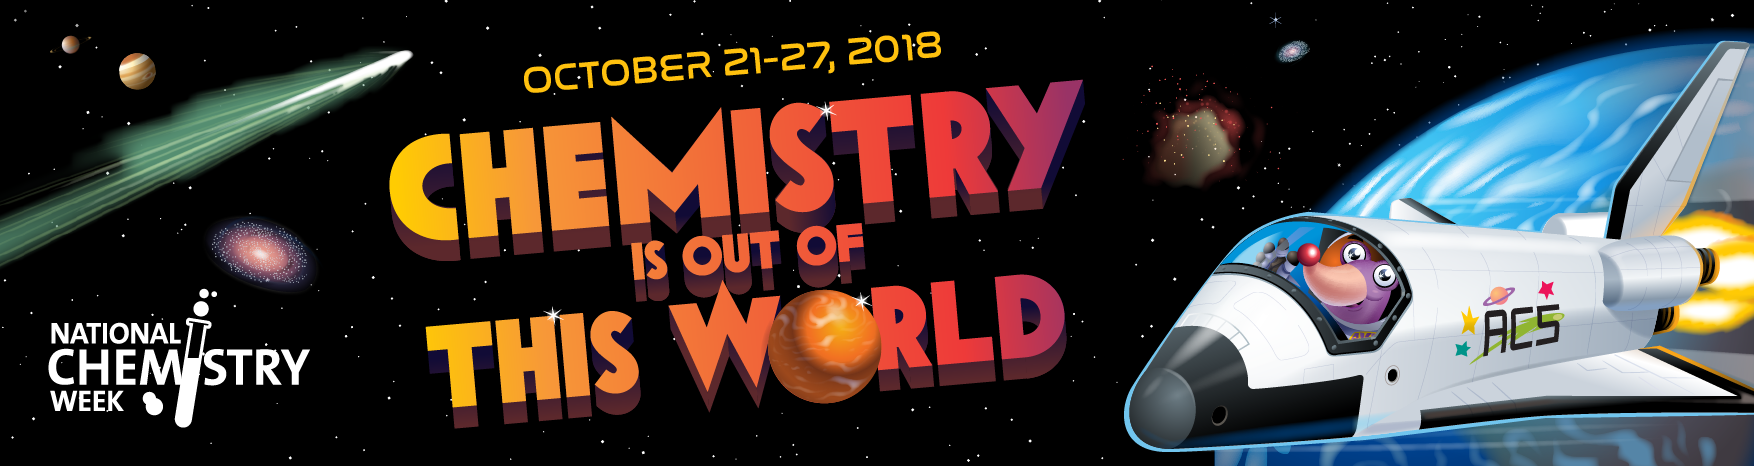 National Chemistry Week 2018 banner